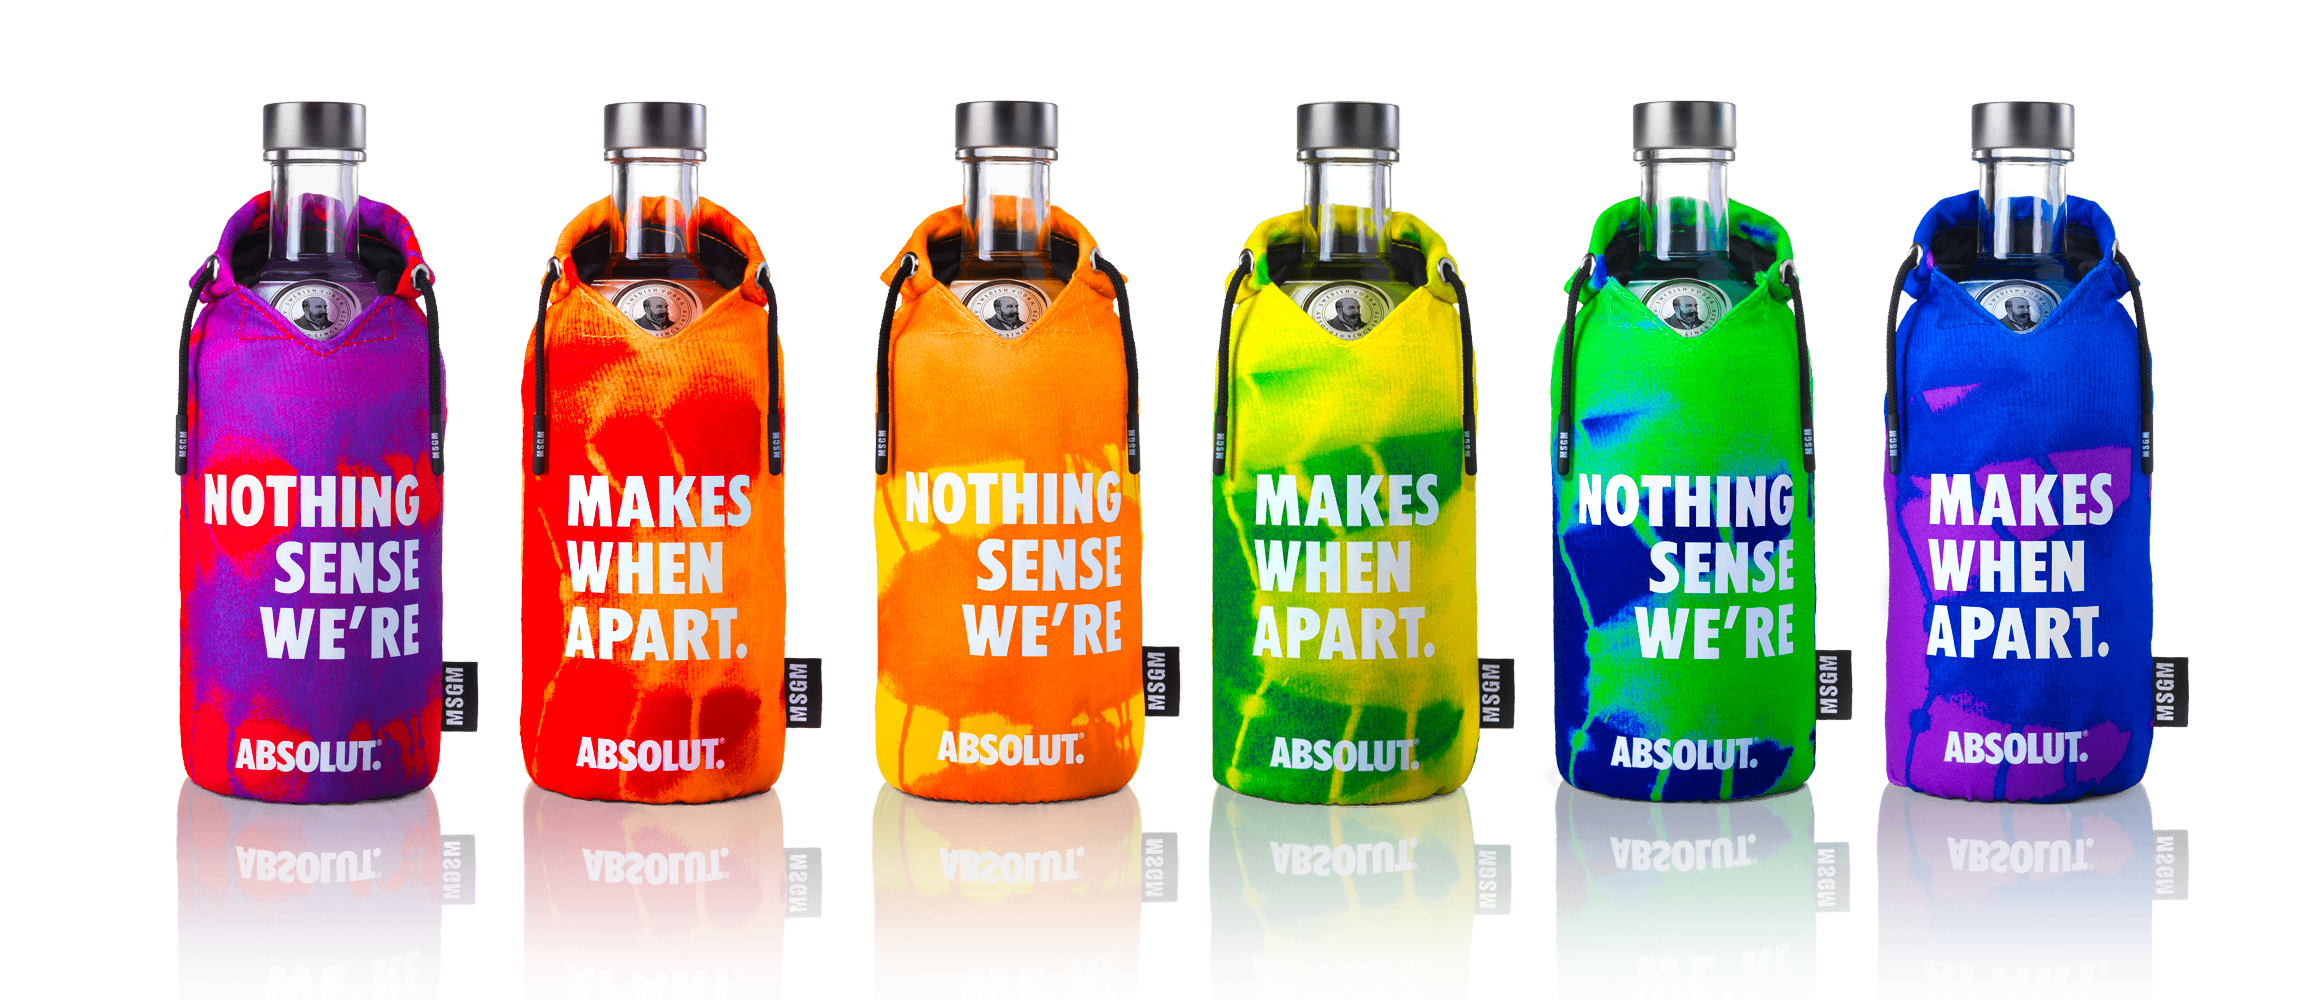 ABSOLUT BETTER TOGETHER: una edizione limitata per l'emergenza sanitaria